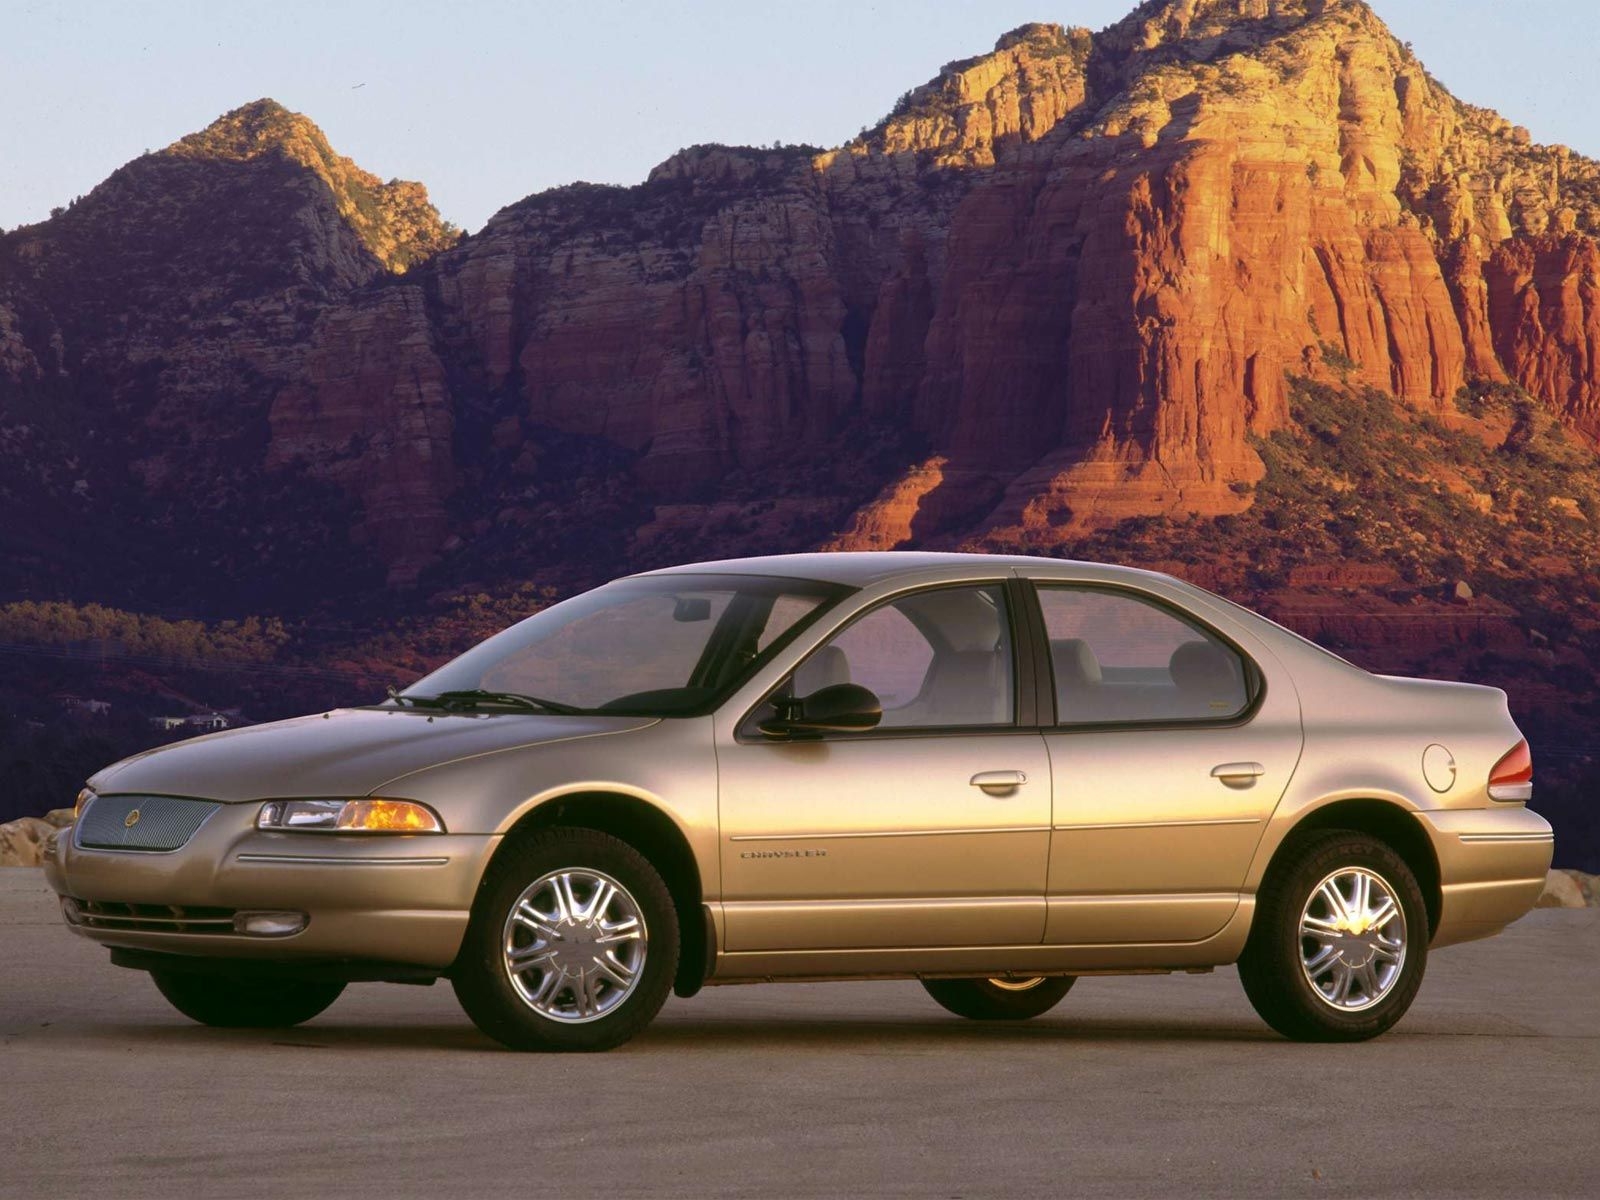 Old Gold 1999 Chrysler Cirrus Still Driving Back And Forth To Work